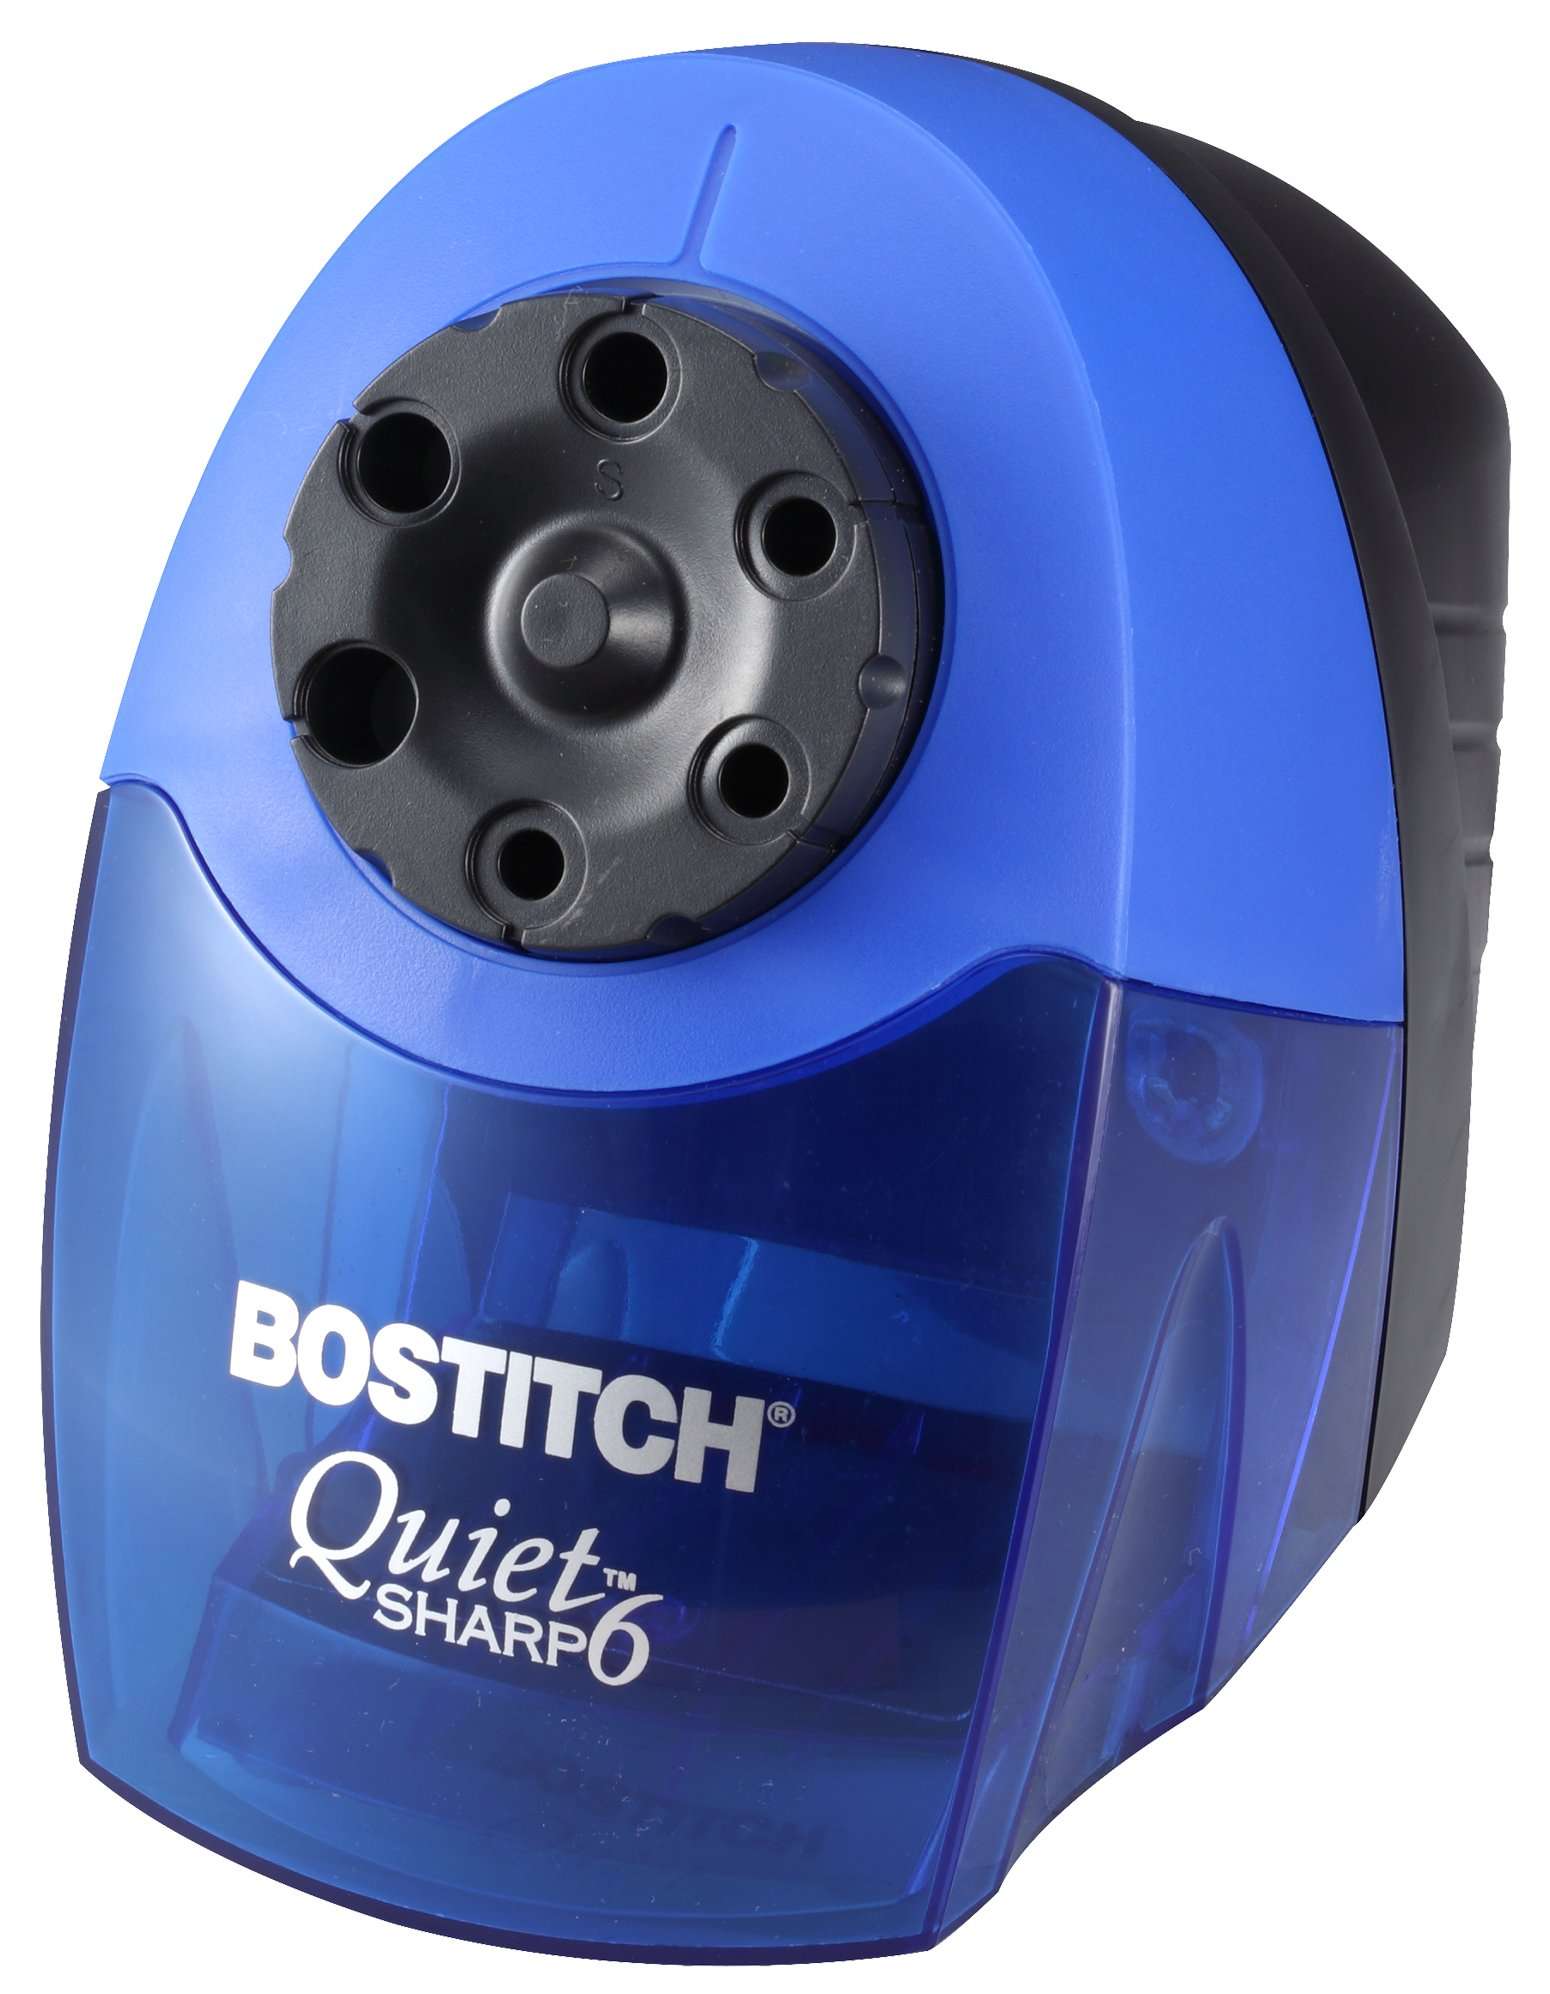 Bostitch QuietSharp 6 Heavy Duty Classroom Electric Pencil Sharpener, 6-Holes, Blue (EPS10HC) by Bostitch Office